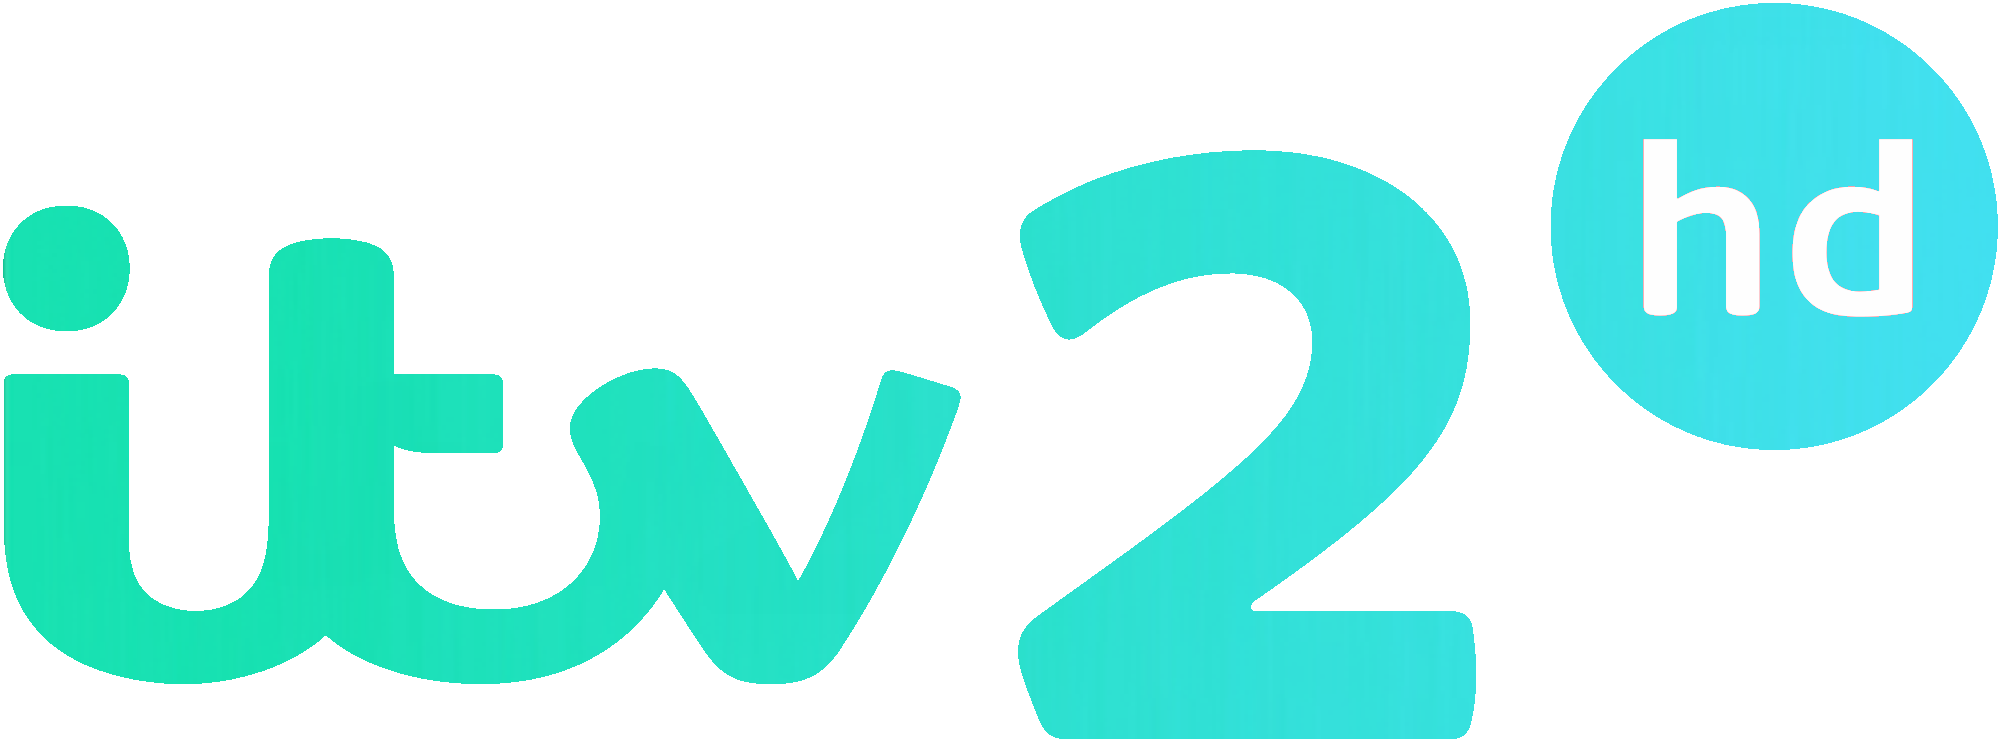 Itv2 Hd Logo Vector PNG Transparent Itv2 Hd Logo Vector